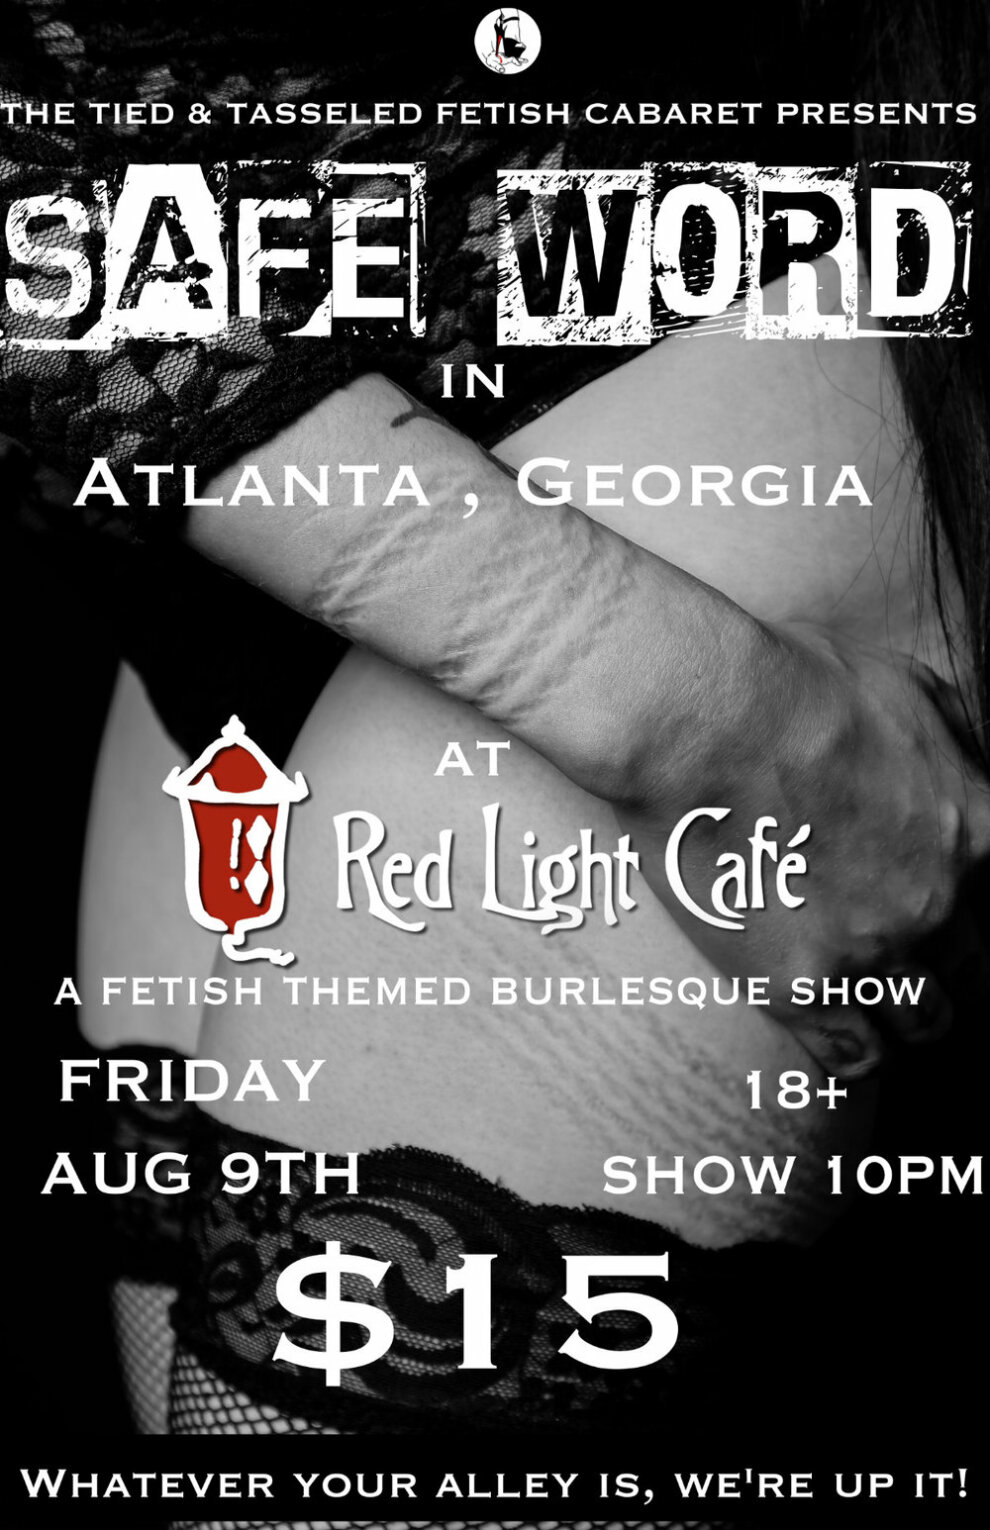 Safe Word A Fetish Themed Burlesque Show Presented By The Tied And Tasseled Fetish Cabaret At Red Light Cafe Atlanta Ga Aug 9 2019 Poster 1200